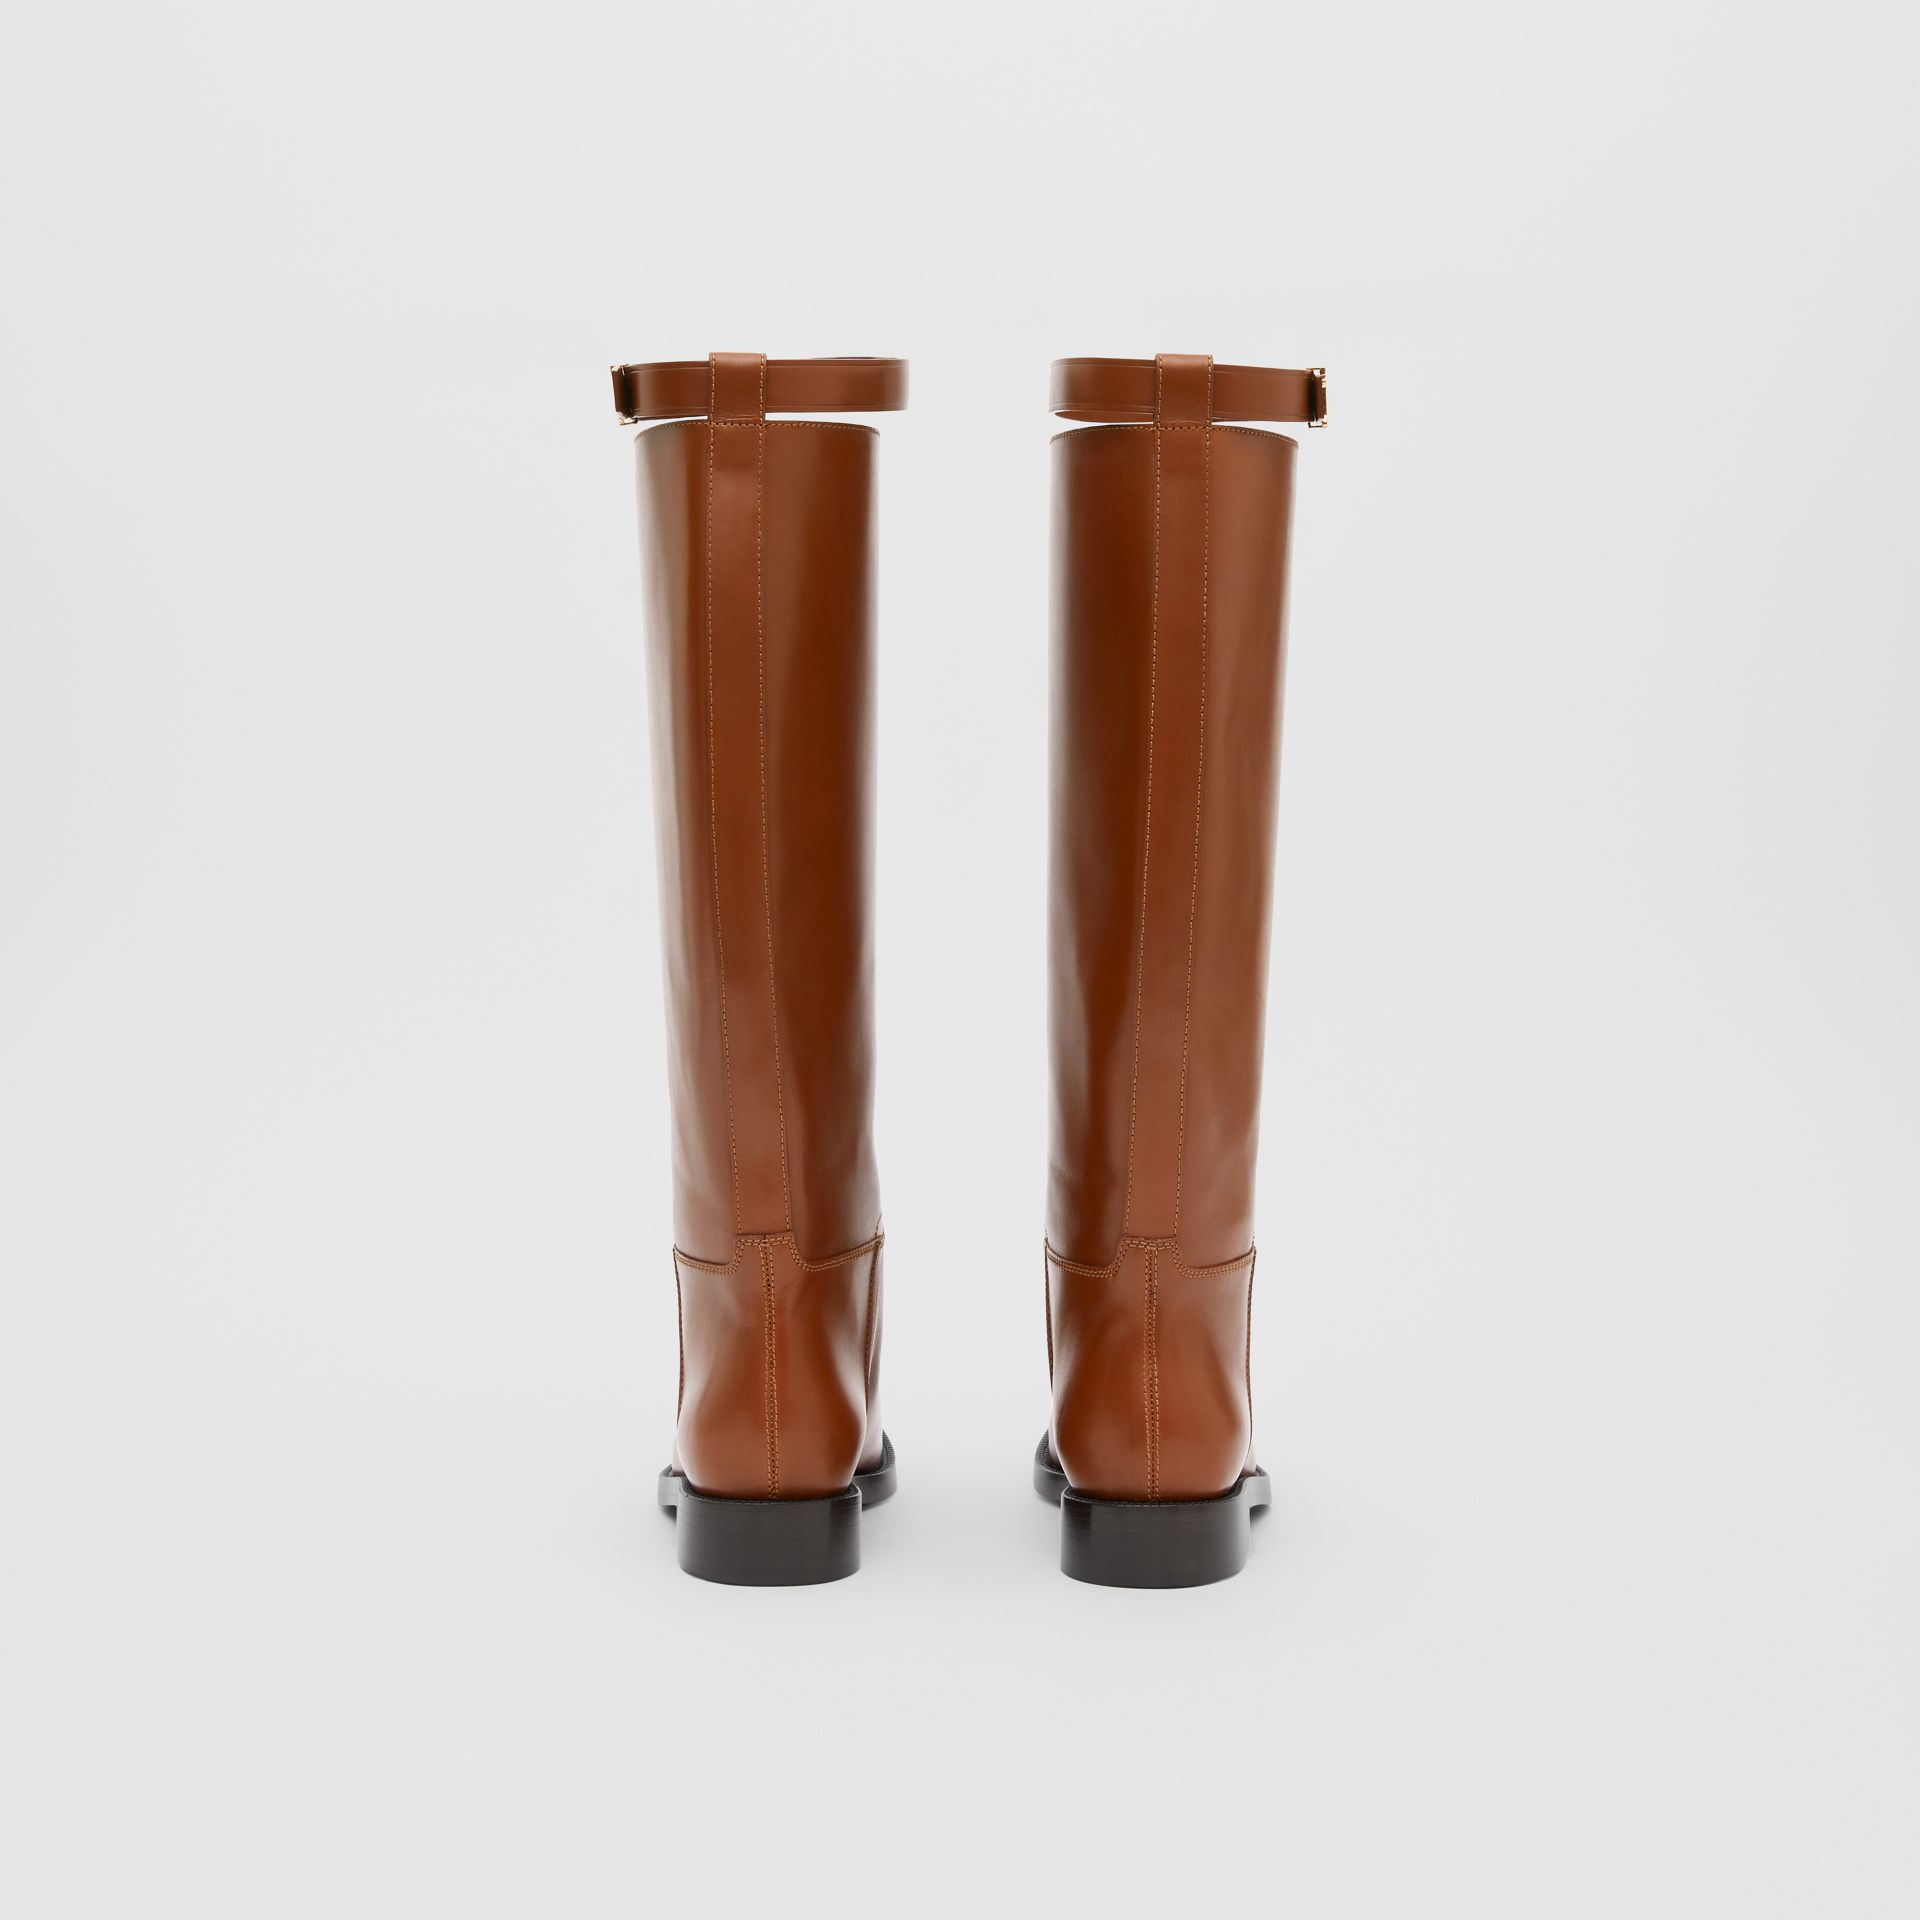 Monogram Motif Leather Knee-high Boots in Tan - Women | Burberry United Kingdom - gallery image 3